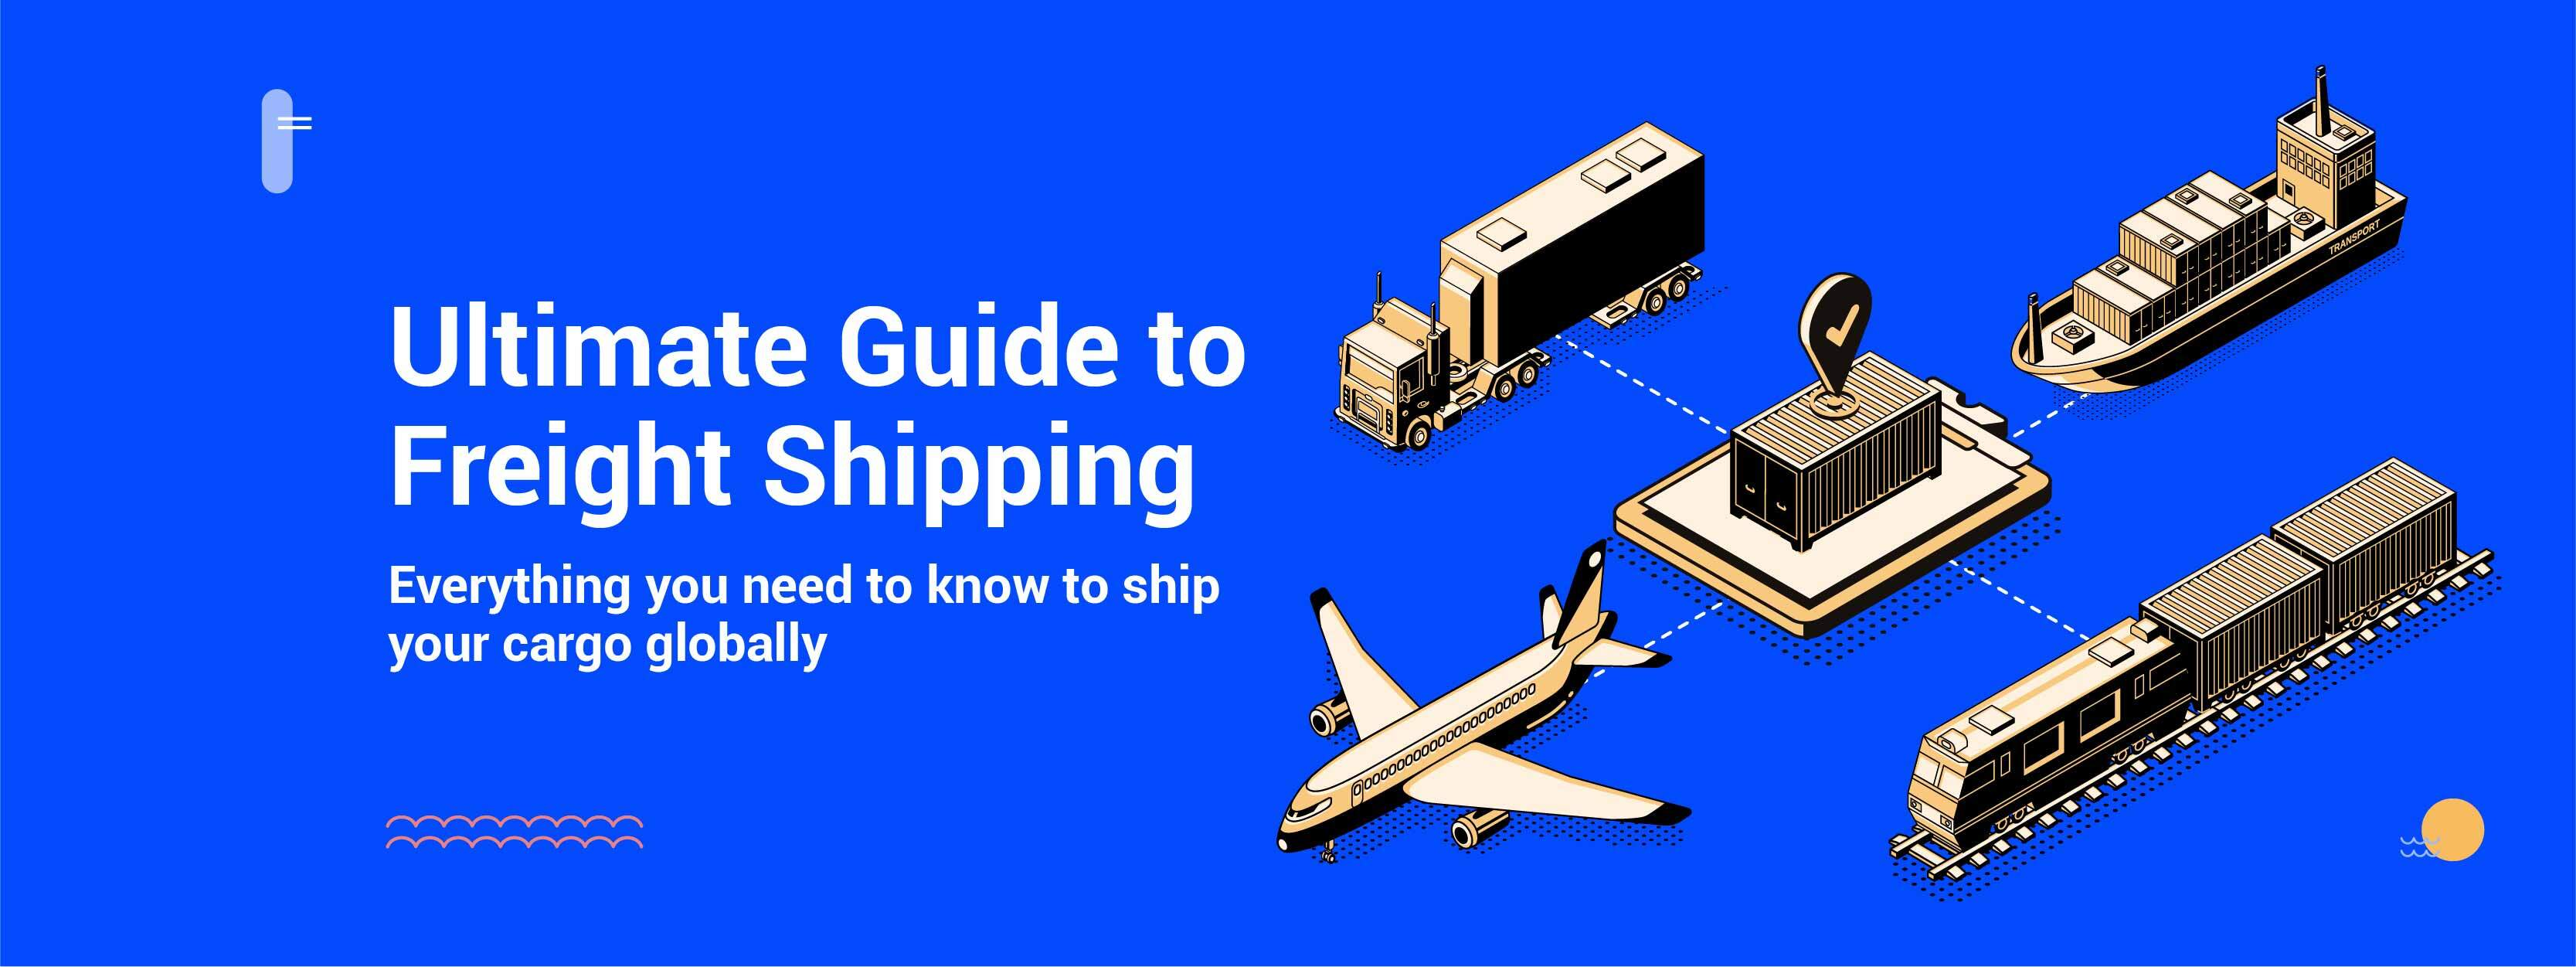 Complete Guide to Freight Shipping: What Exporters/Importers Need To Know